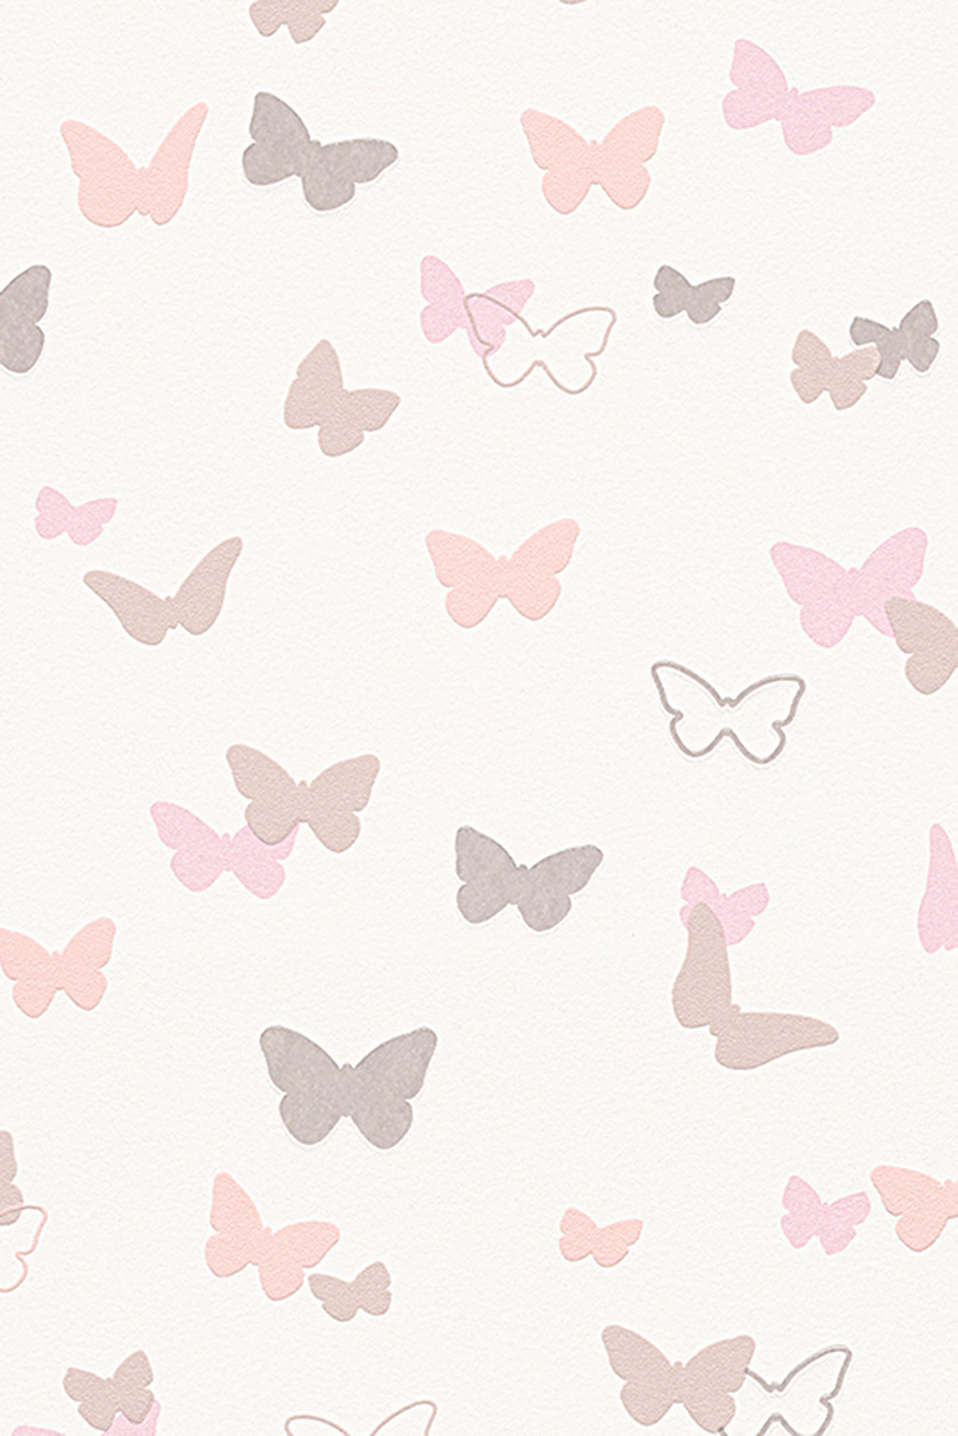 Esprit - Kids wallpaper Sweet Butterfly Patterned